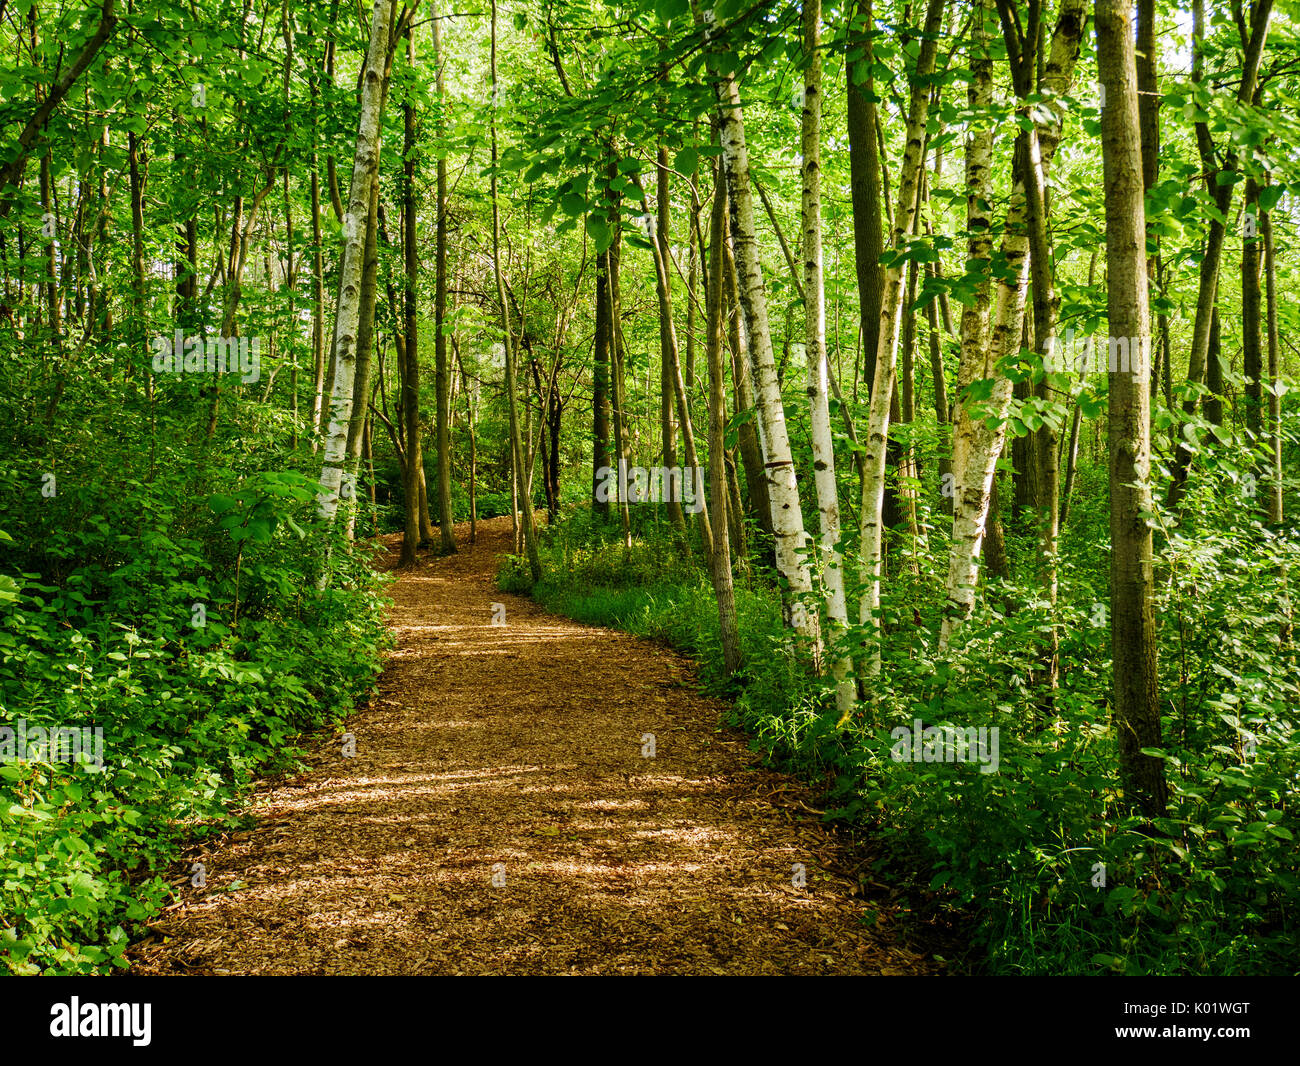 Path through woods with birch trees. Lion's Den Gorge Nature Preserve, Wisconsin. - Stock Image